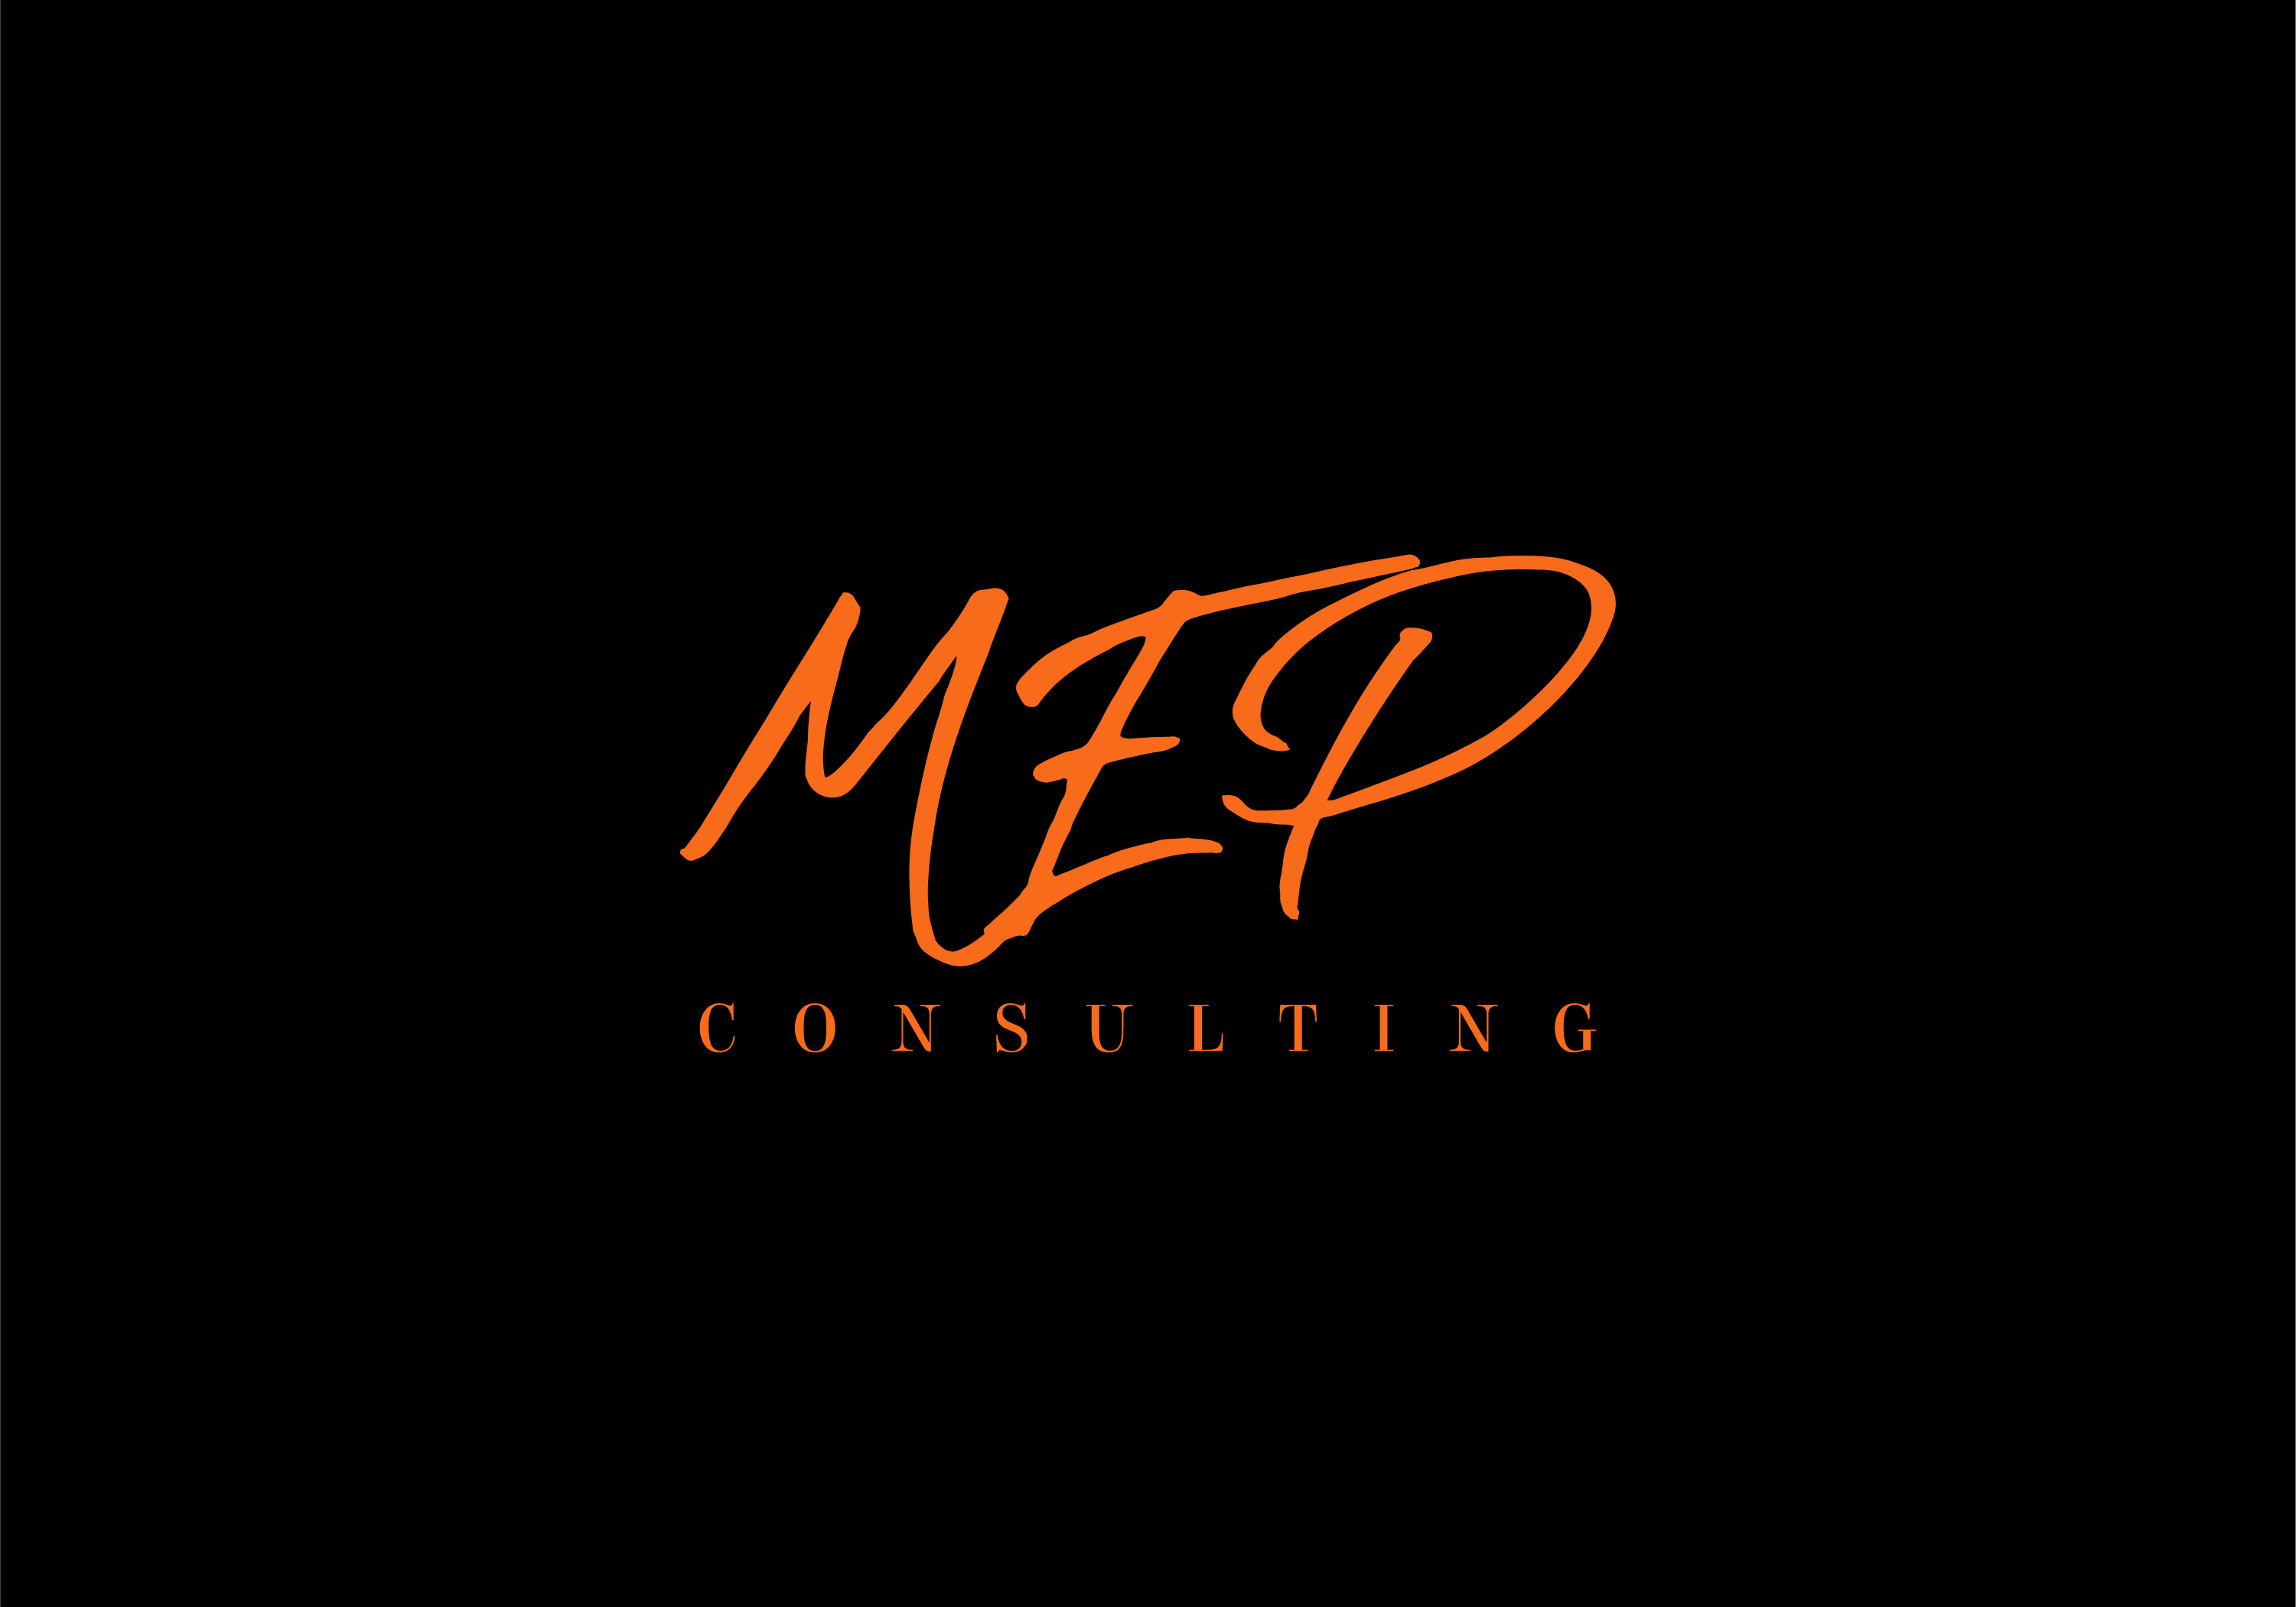 MEPConsulting